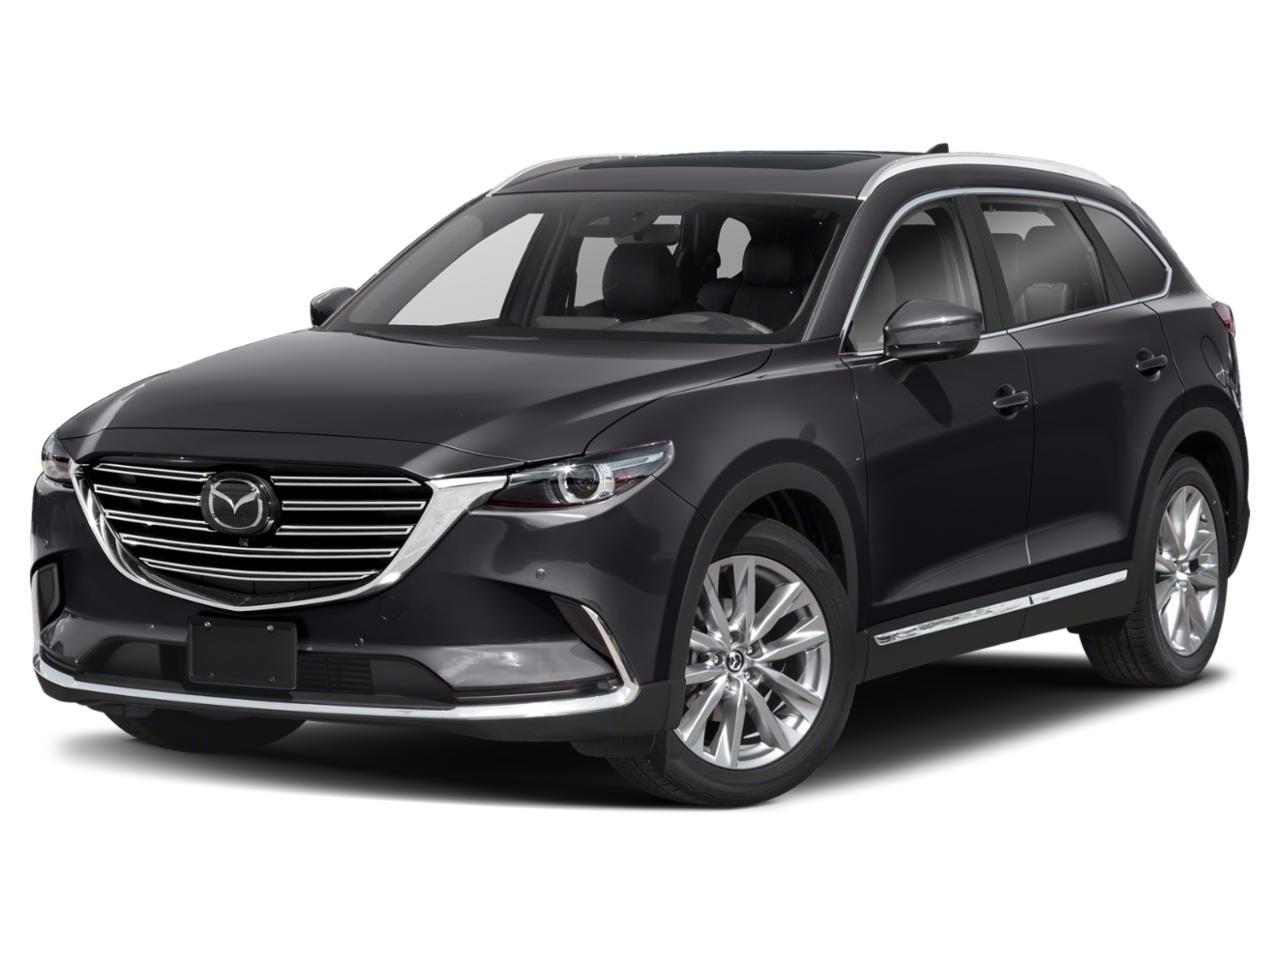 2021 Mazda CX-9 Vehicle Photo in Rockville, MD 20852